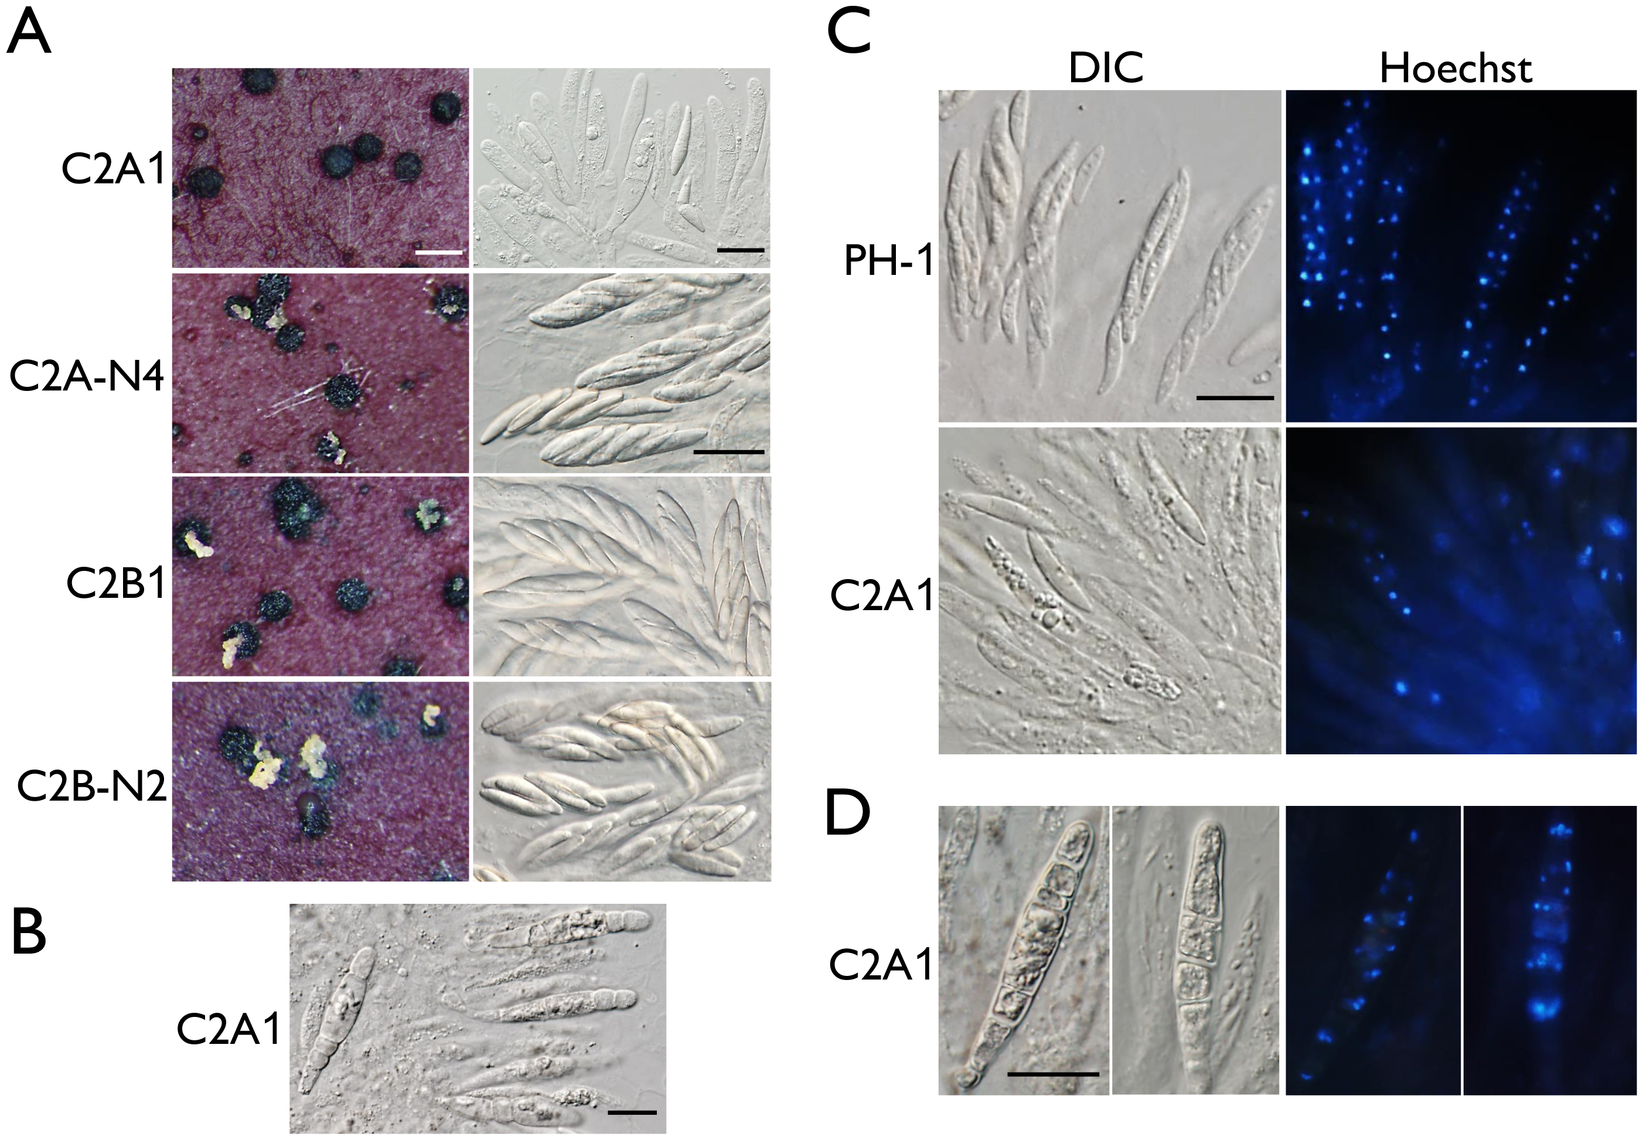 Assays for defects in sexual reproduction in the <i>cdc2A</i> and <i>cdc2B</i> deletion mutants.